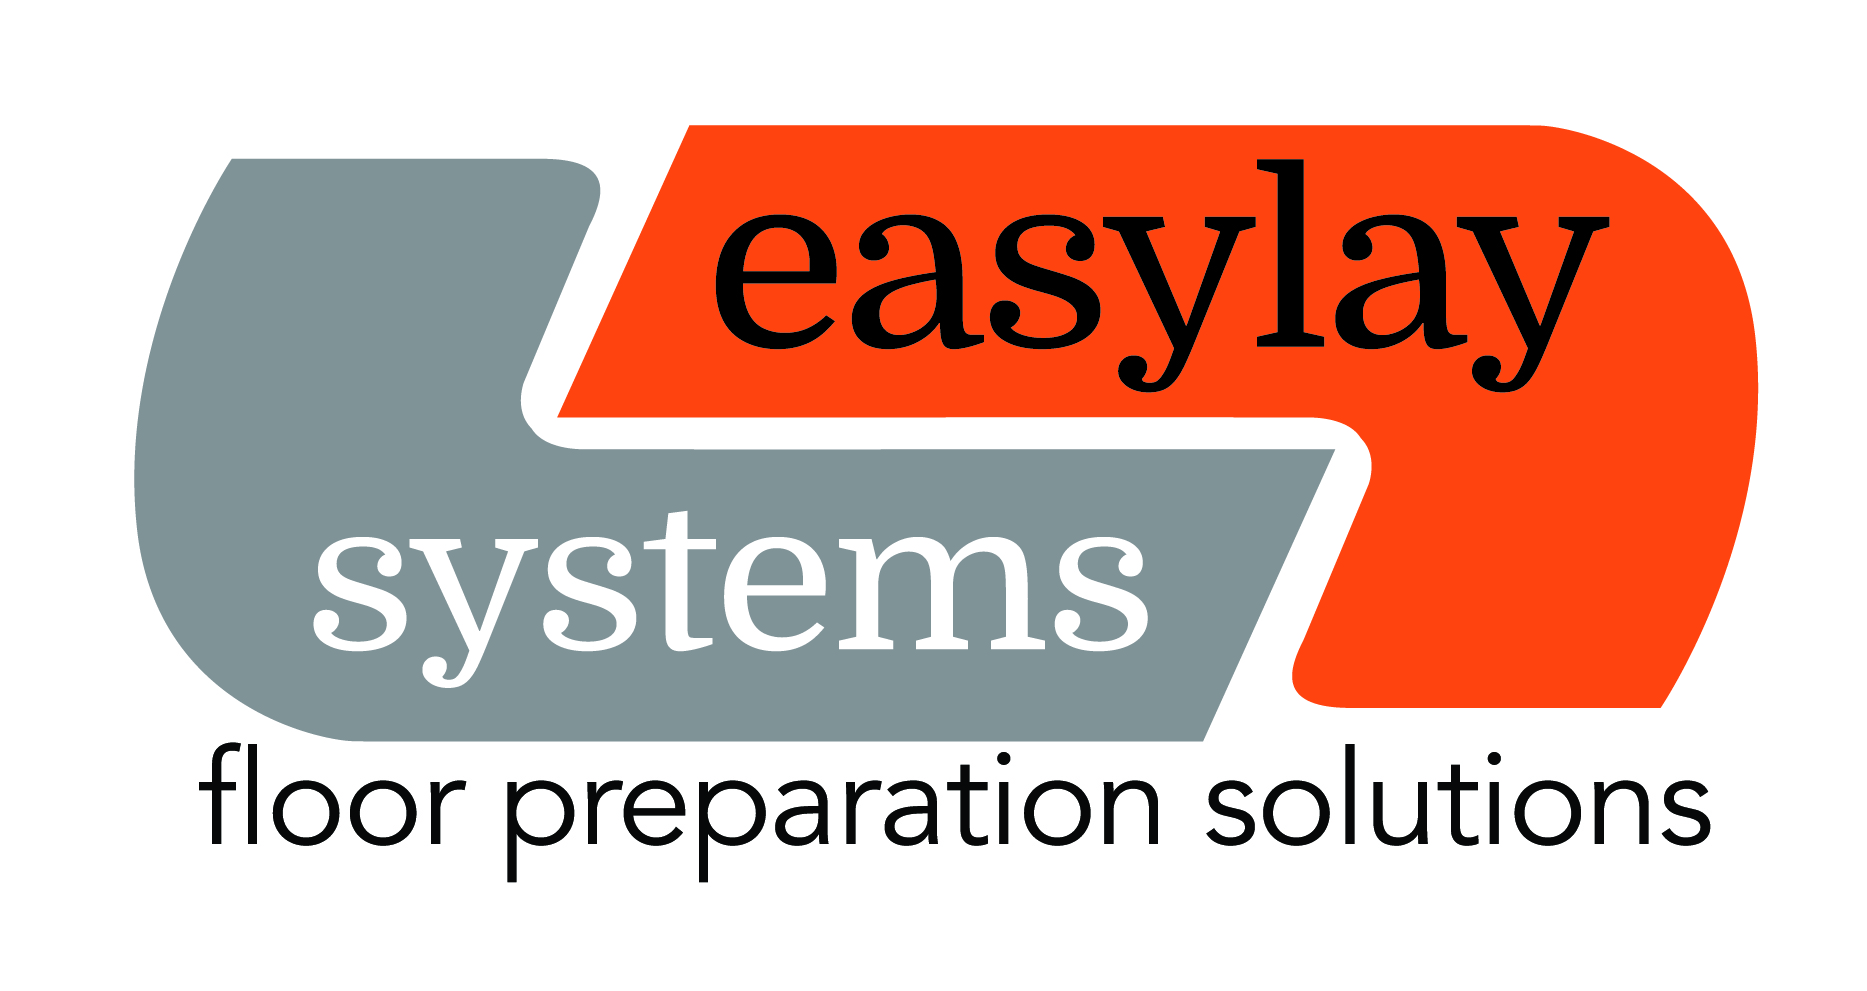 Easylay Systems